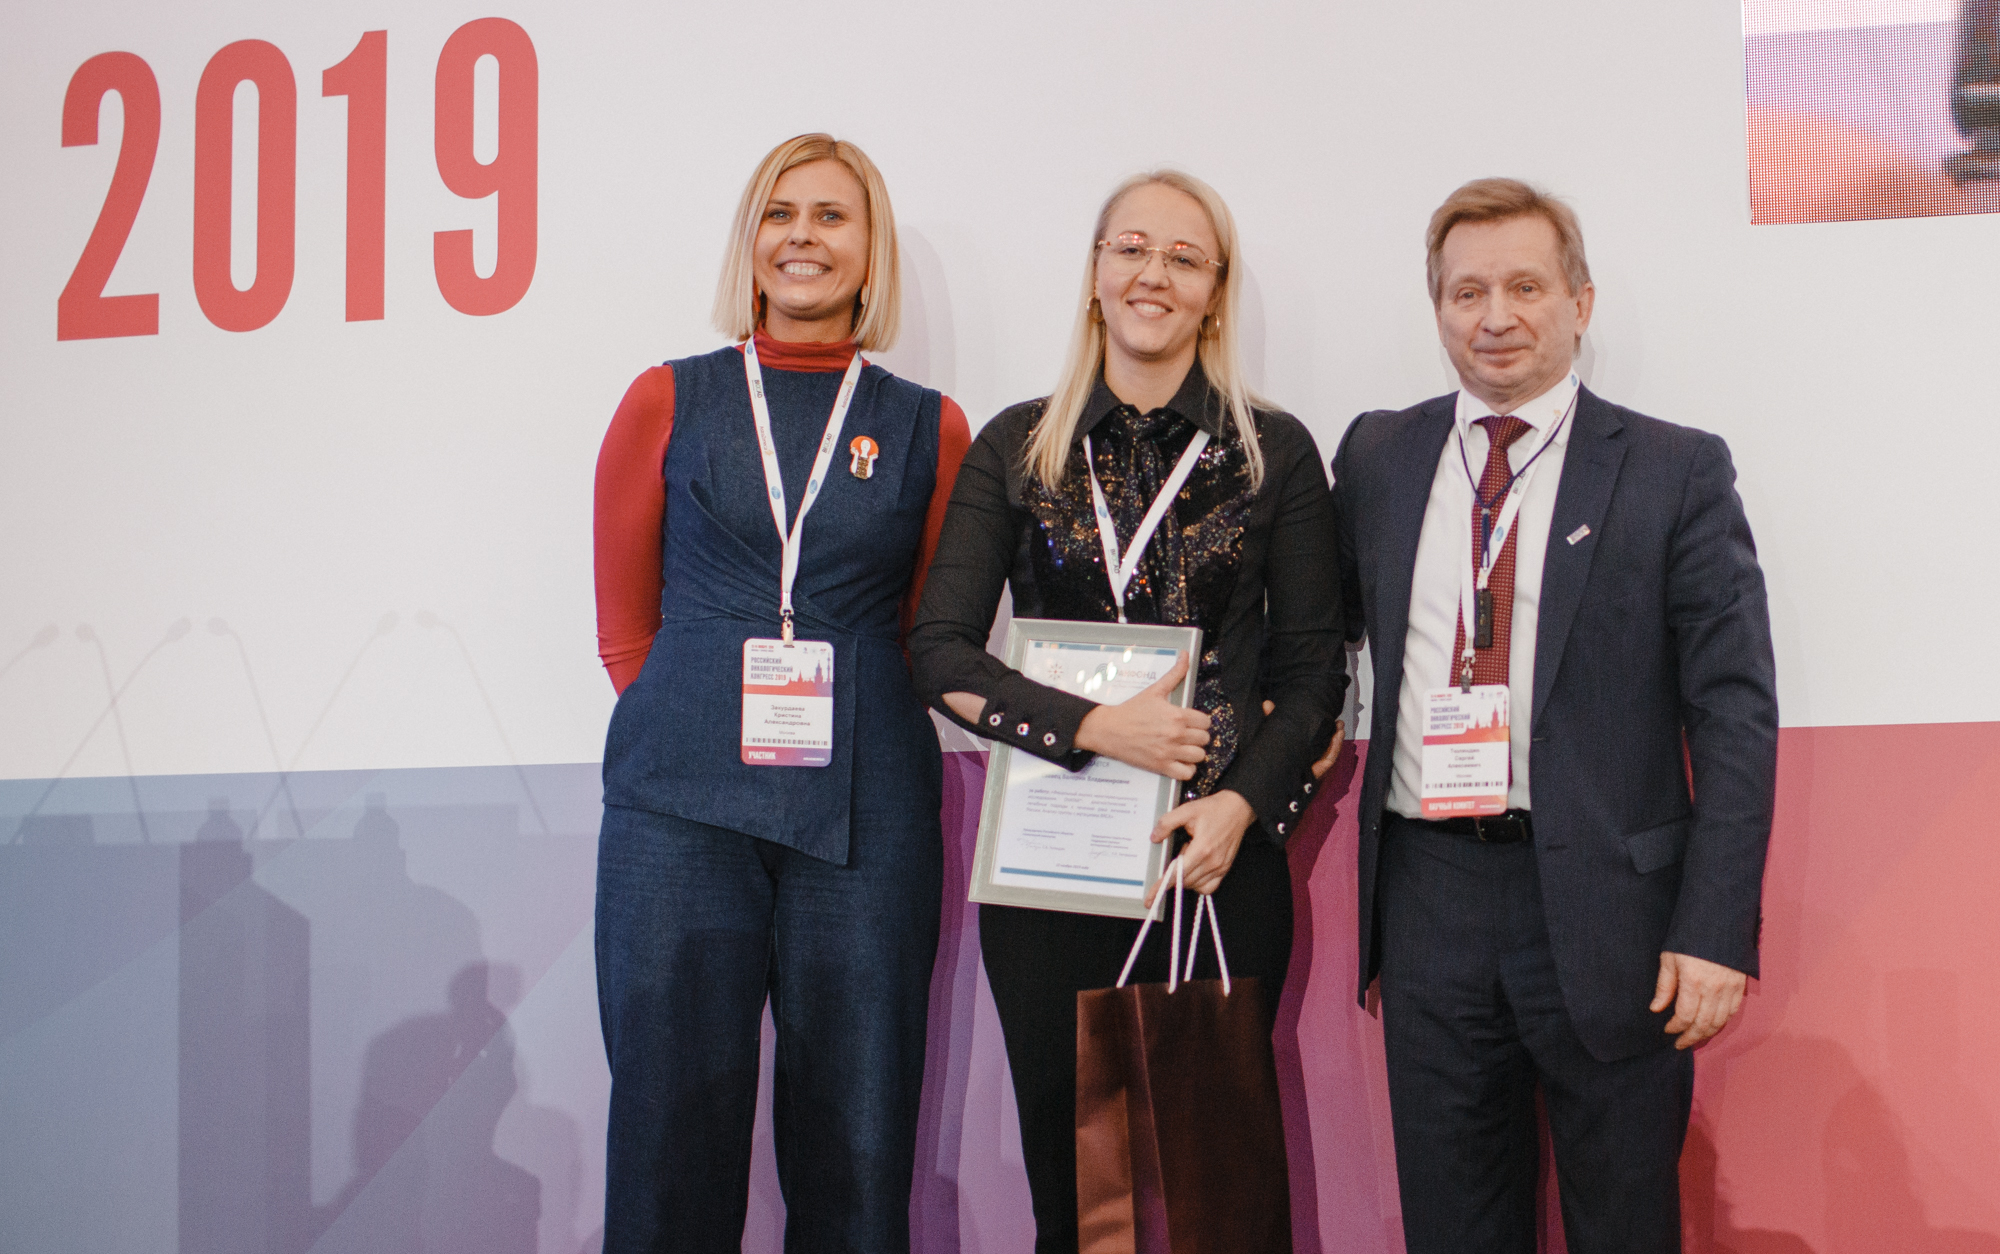 RAKFOND AND RUSSCO AWARD FOR THE BEST RESEARCH